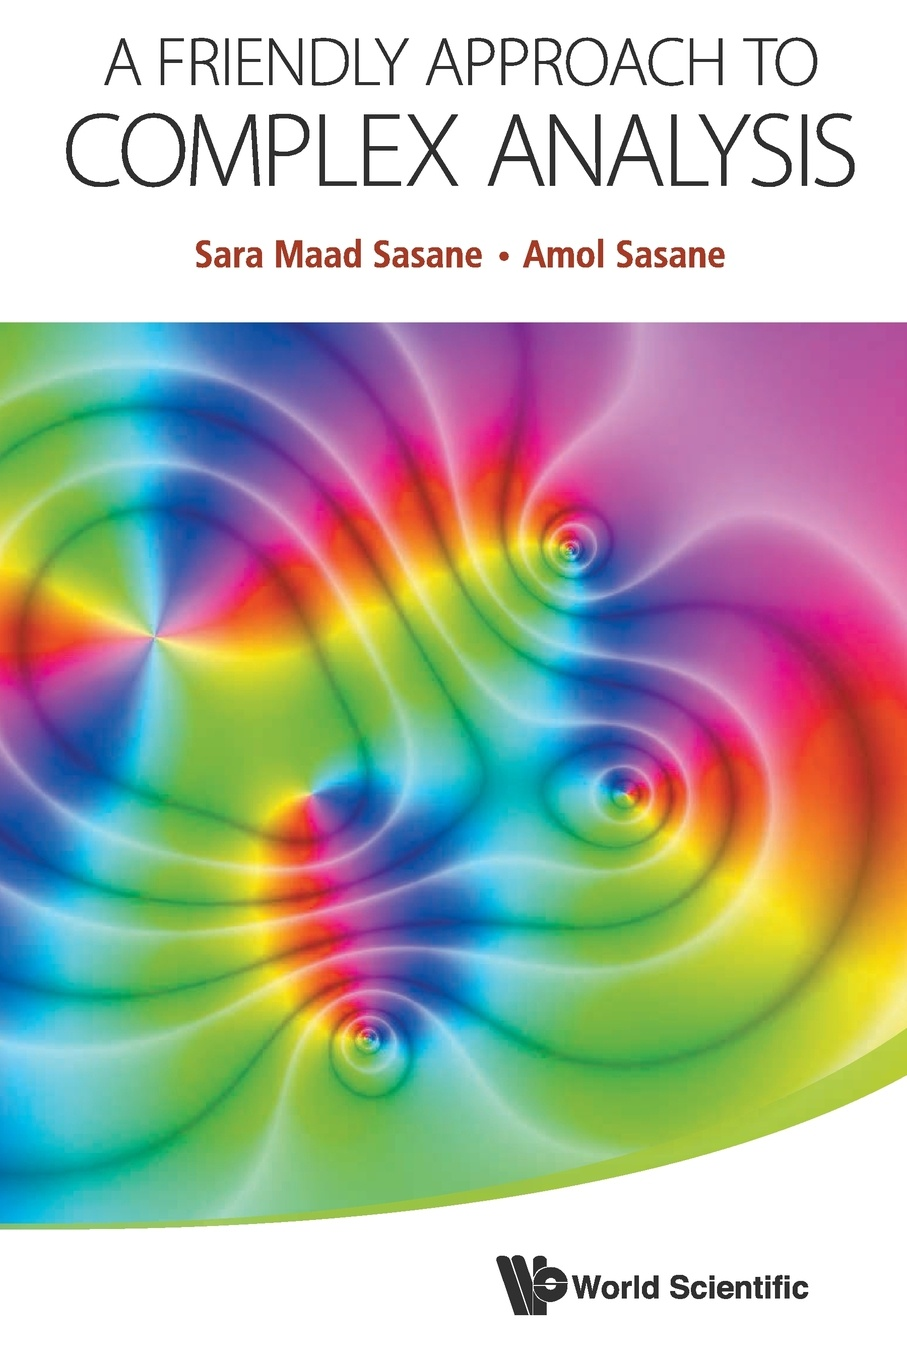 SARA MAAD SASANE, AMOL SASANE FRIENDLY APPROACH TO COMPLEX ANALYSIS, A michael archer d the forex chartist companion a visual approach to technical analysis